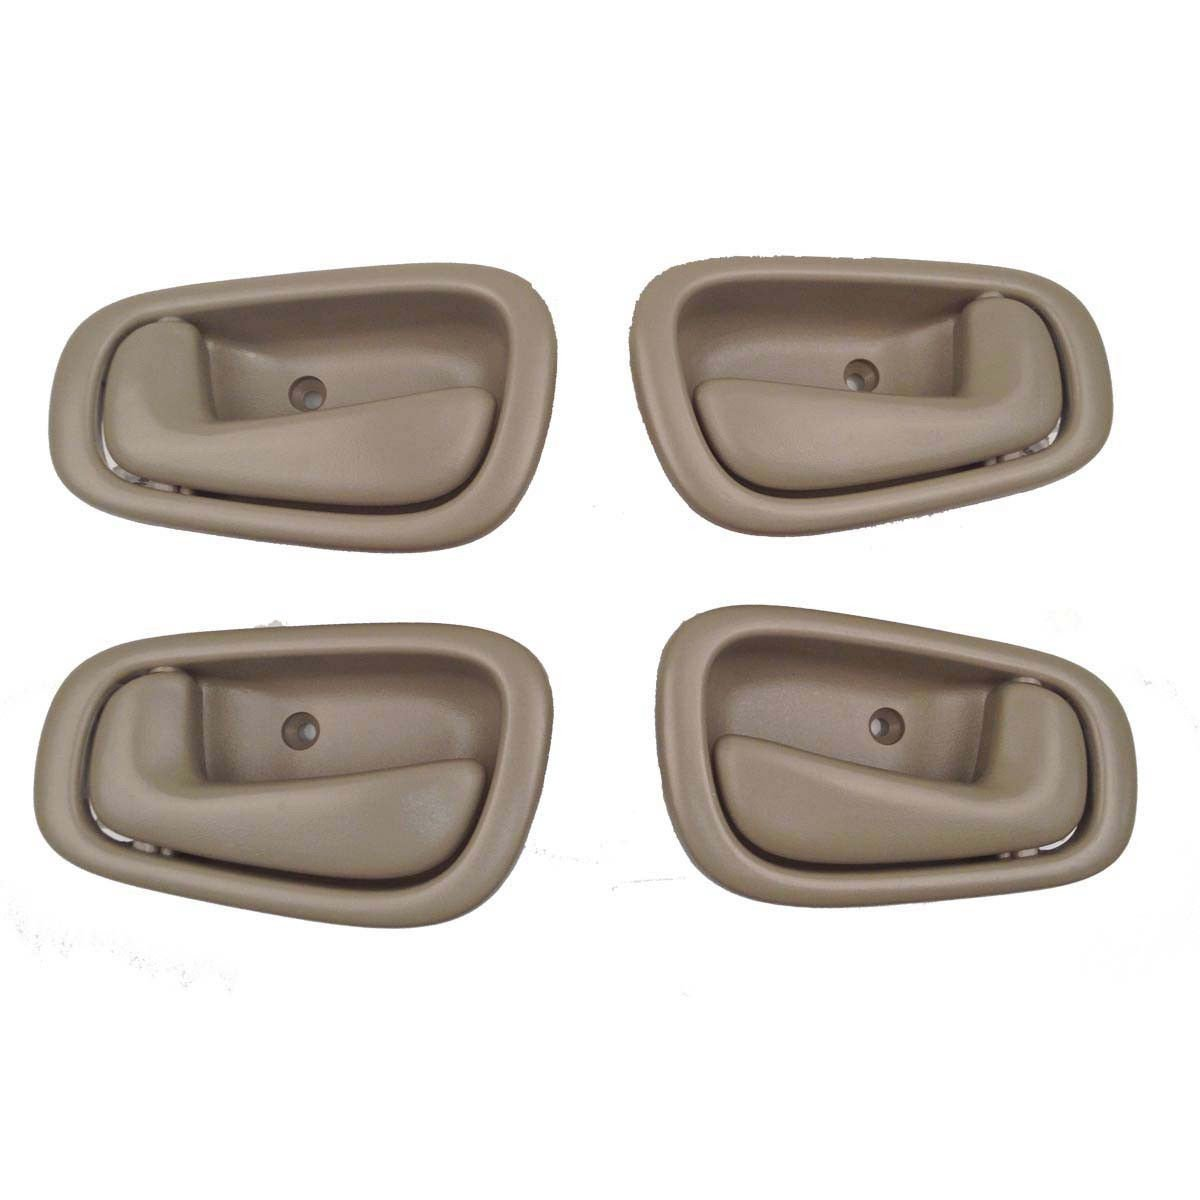 Amazon.com: Toyota Corolla Tan Interior Door Handles Set of 4 ...